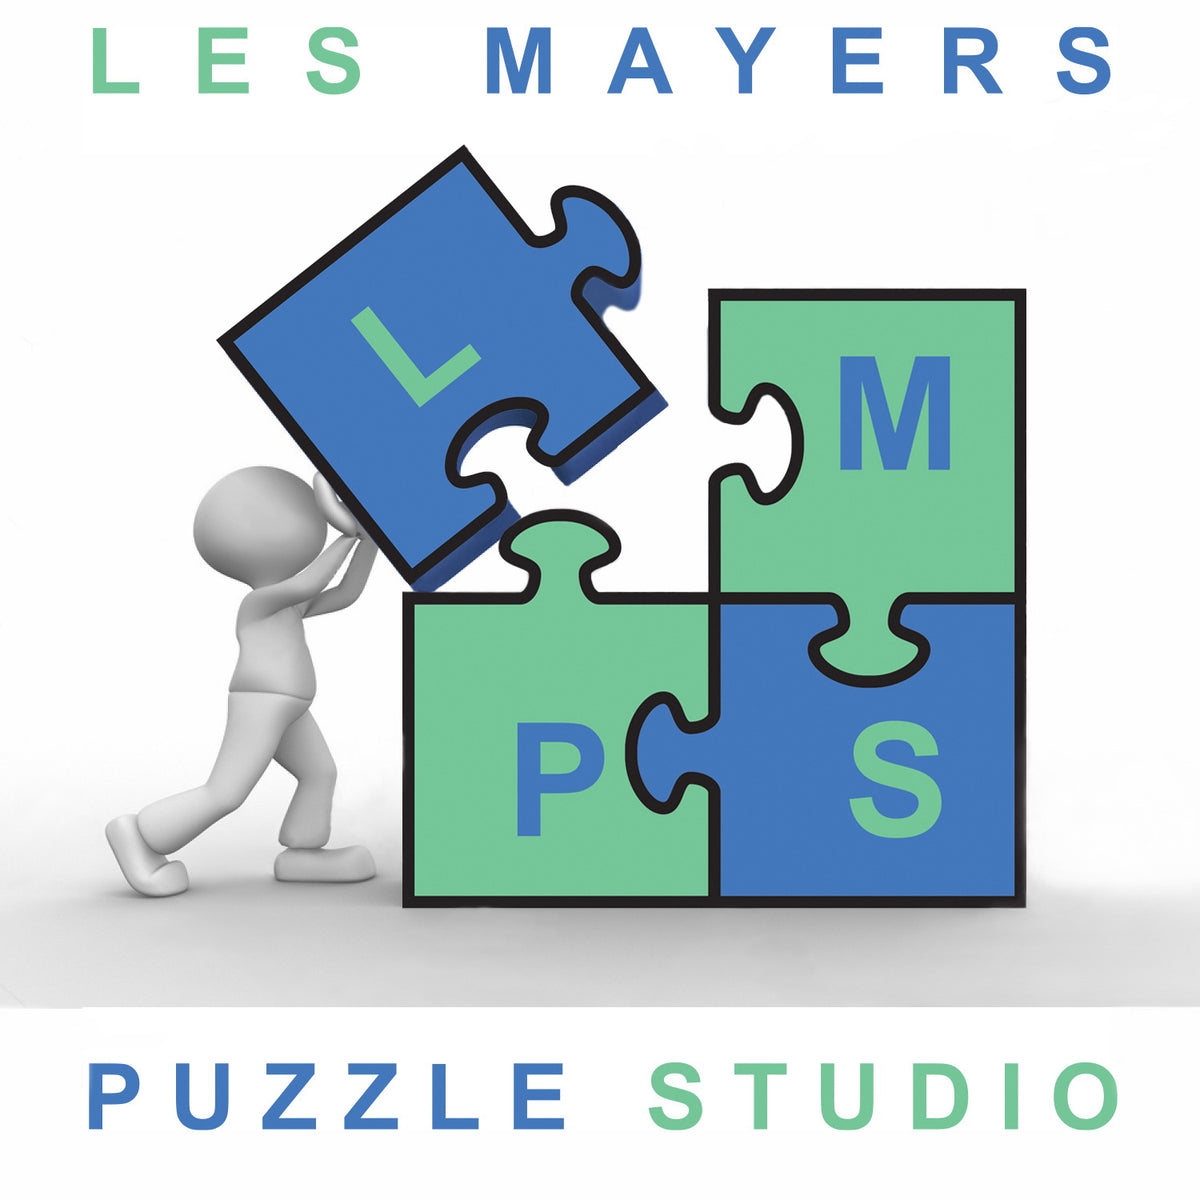 INTRODUCTORY VIDEO FOR LES MAYERS PUZZLE STUDIO - CONTEMPORARY ART JIGSAW PUZZLES